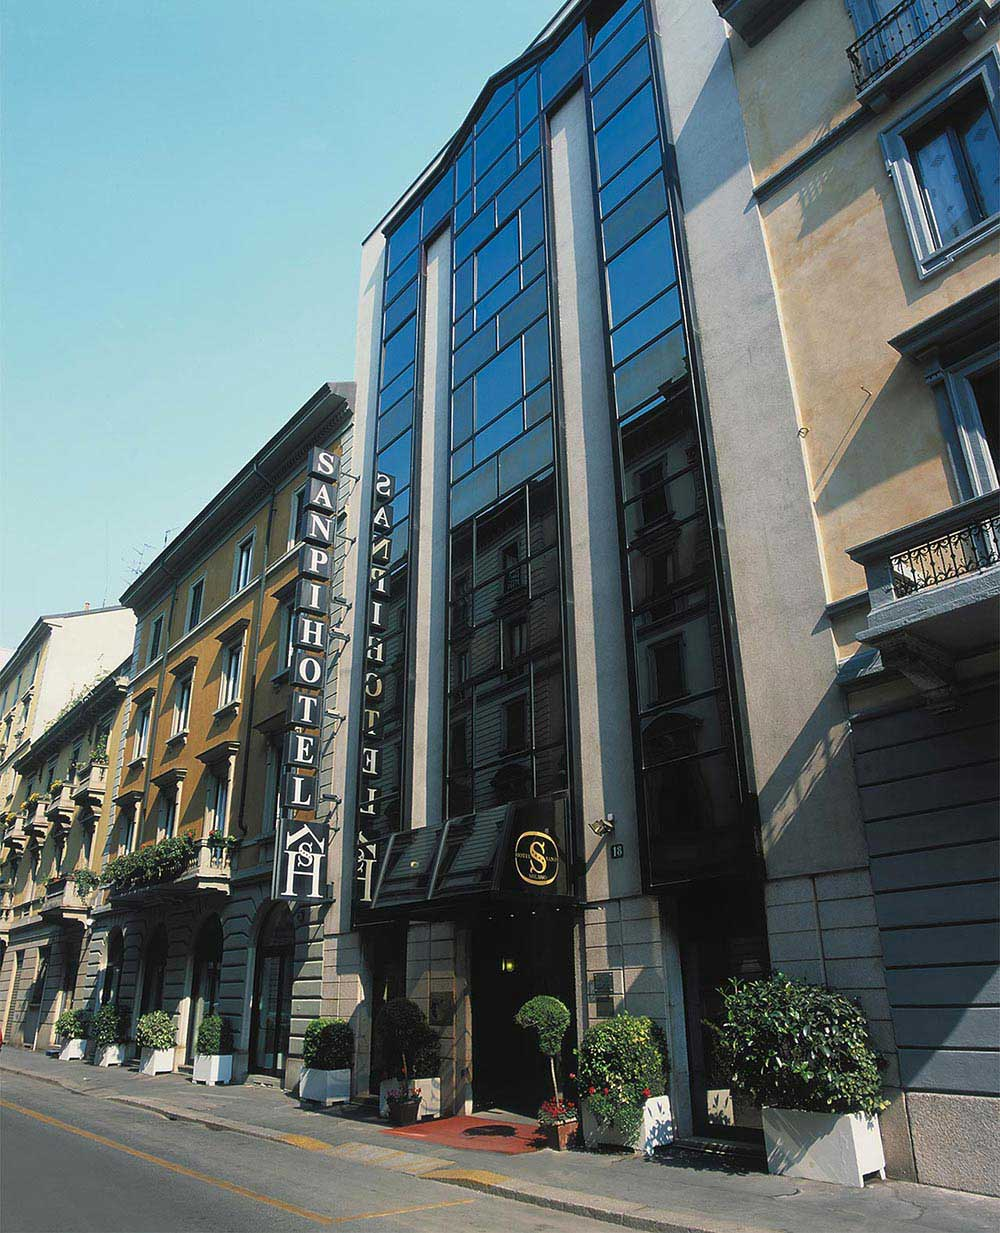 Hotel sanpi milano boutique hotel in the center of milan for Boutique hotels milan